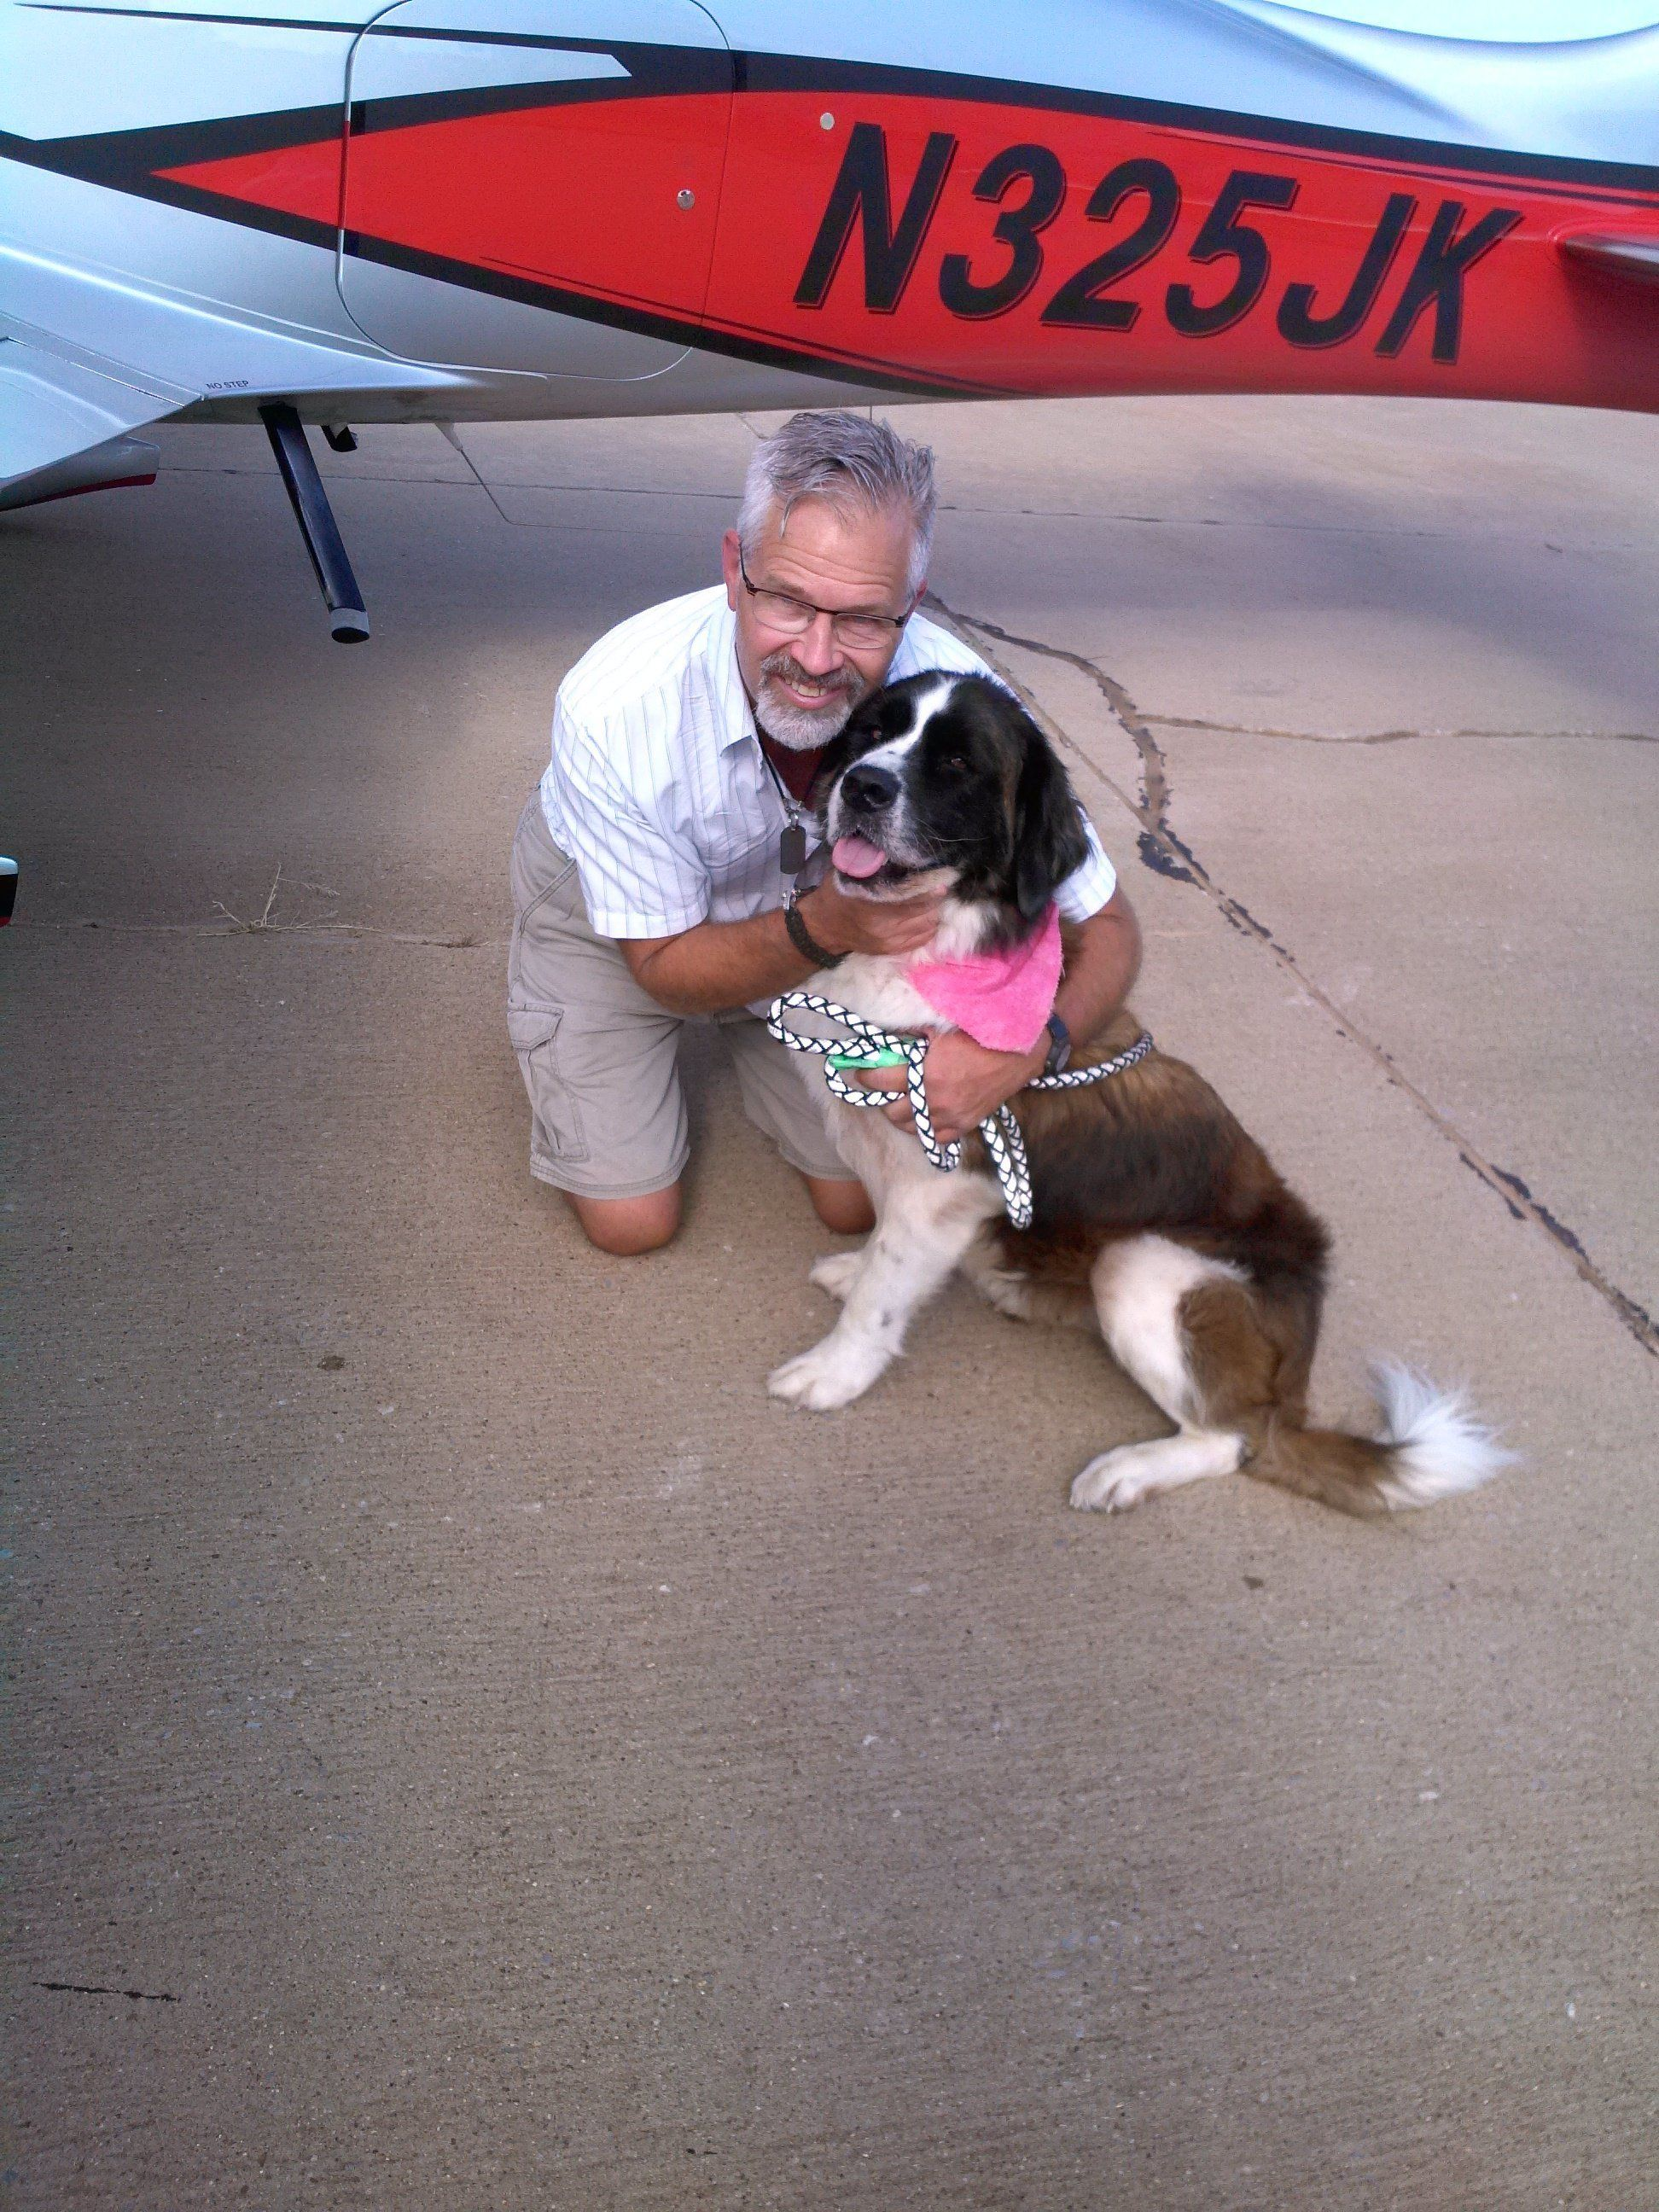 Kinsinger in a photo provided by Pilots N Paws, seen with a dog named Big Sid.